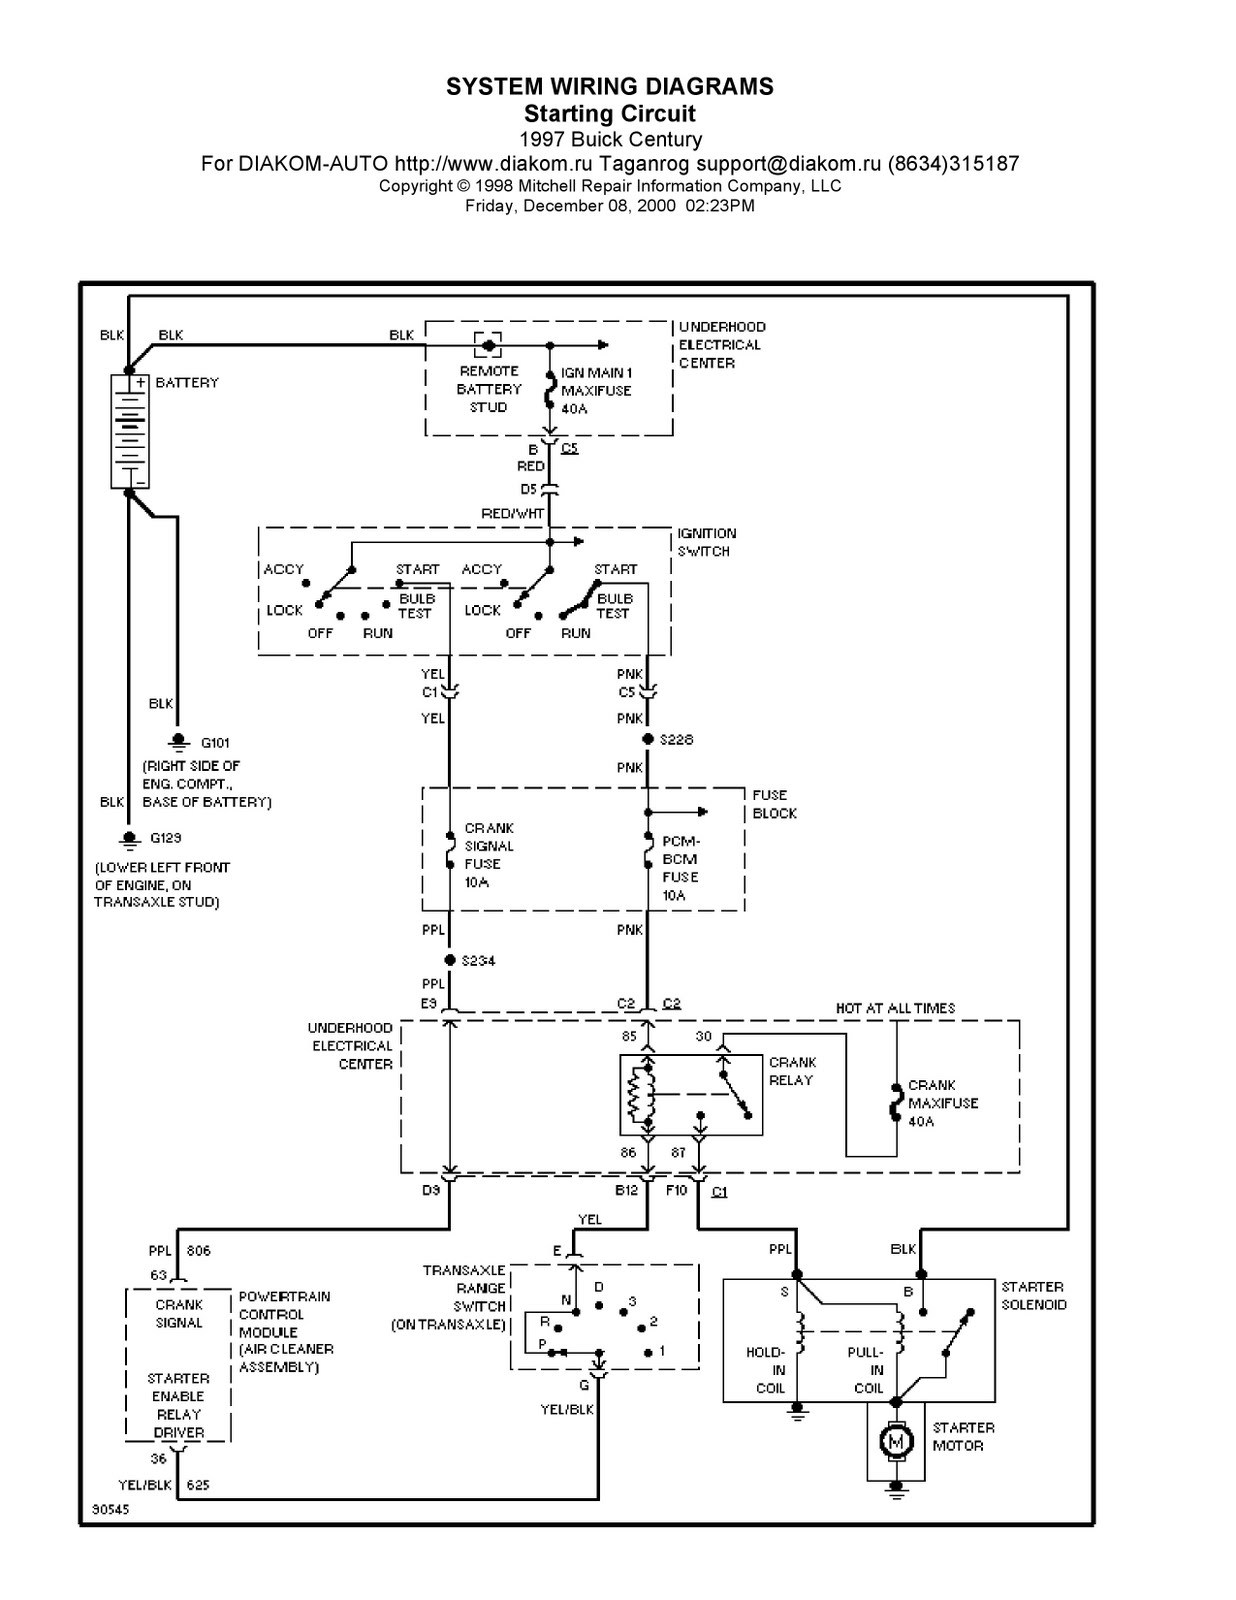 1998 Buick Park Avenue Ultra Electronic Suspension Wiring ... on buick century manual, buick headlight wiring, buick regal radio wiring diagram, buick century electrical diagrams, buick rendezvous door lock diagram, buick century dashboard, buick wiring schematics online, buick lesabre engine diagram, buick regal master switch diagram, buick fuse box,